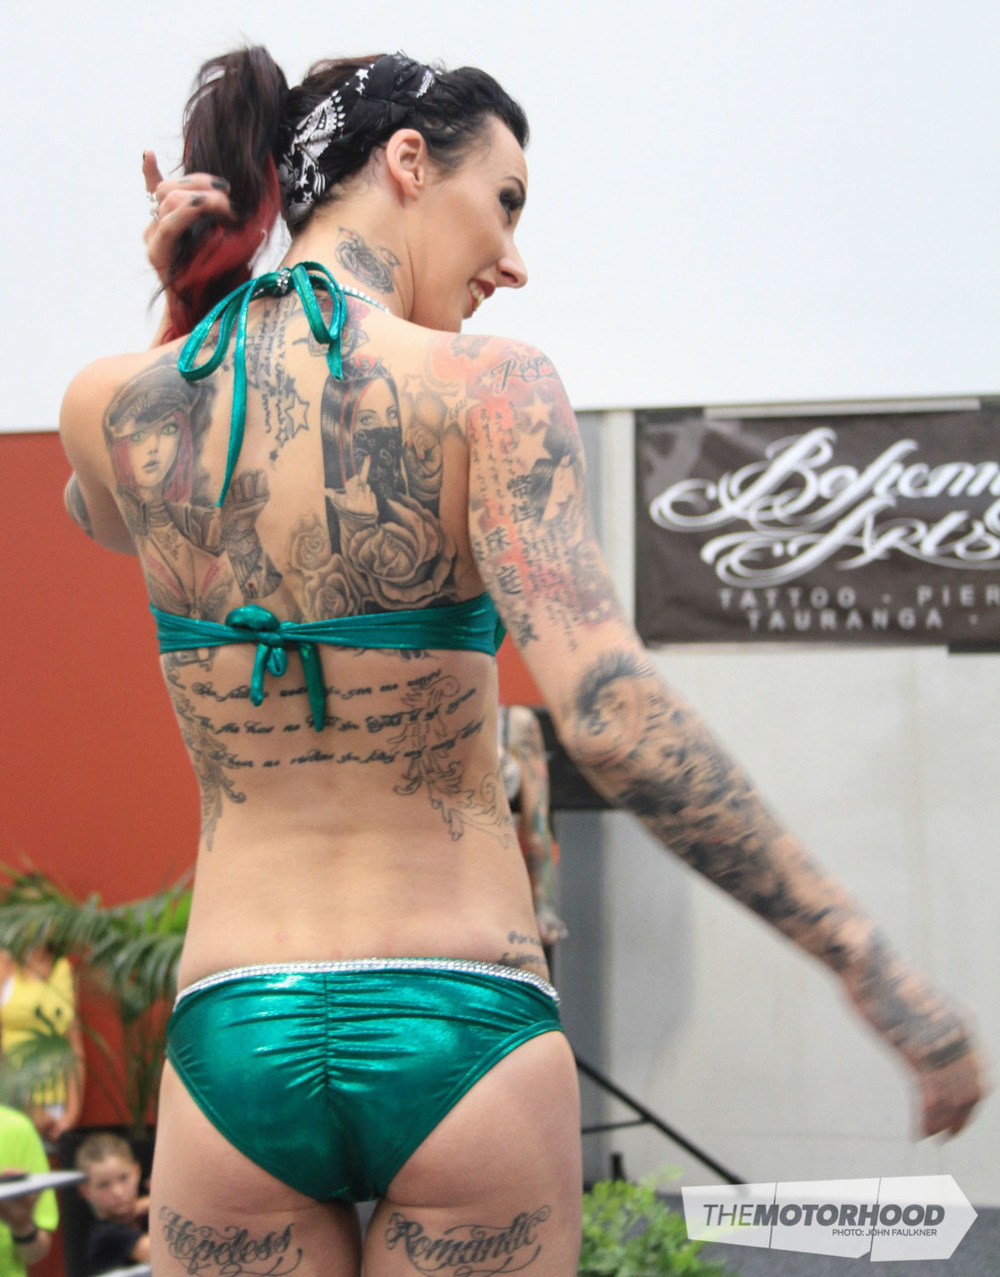 Serenity Steel was awarded first place in Miss Tattoo 2015